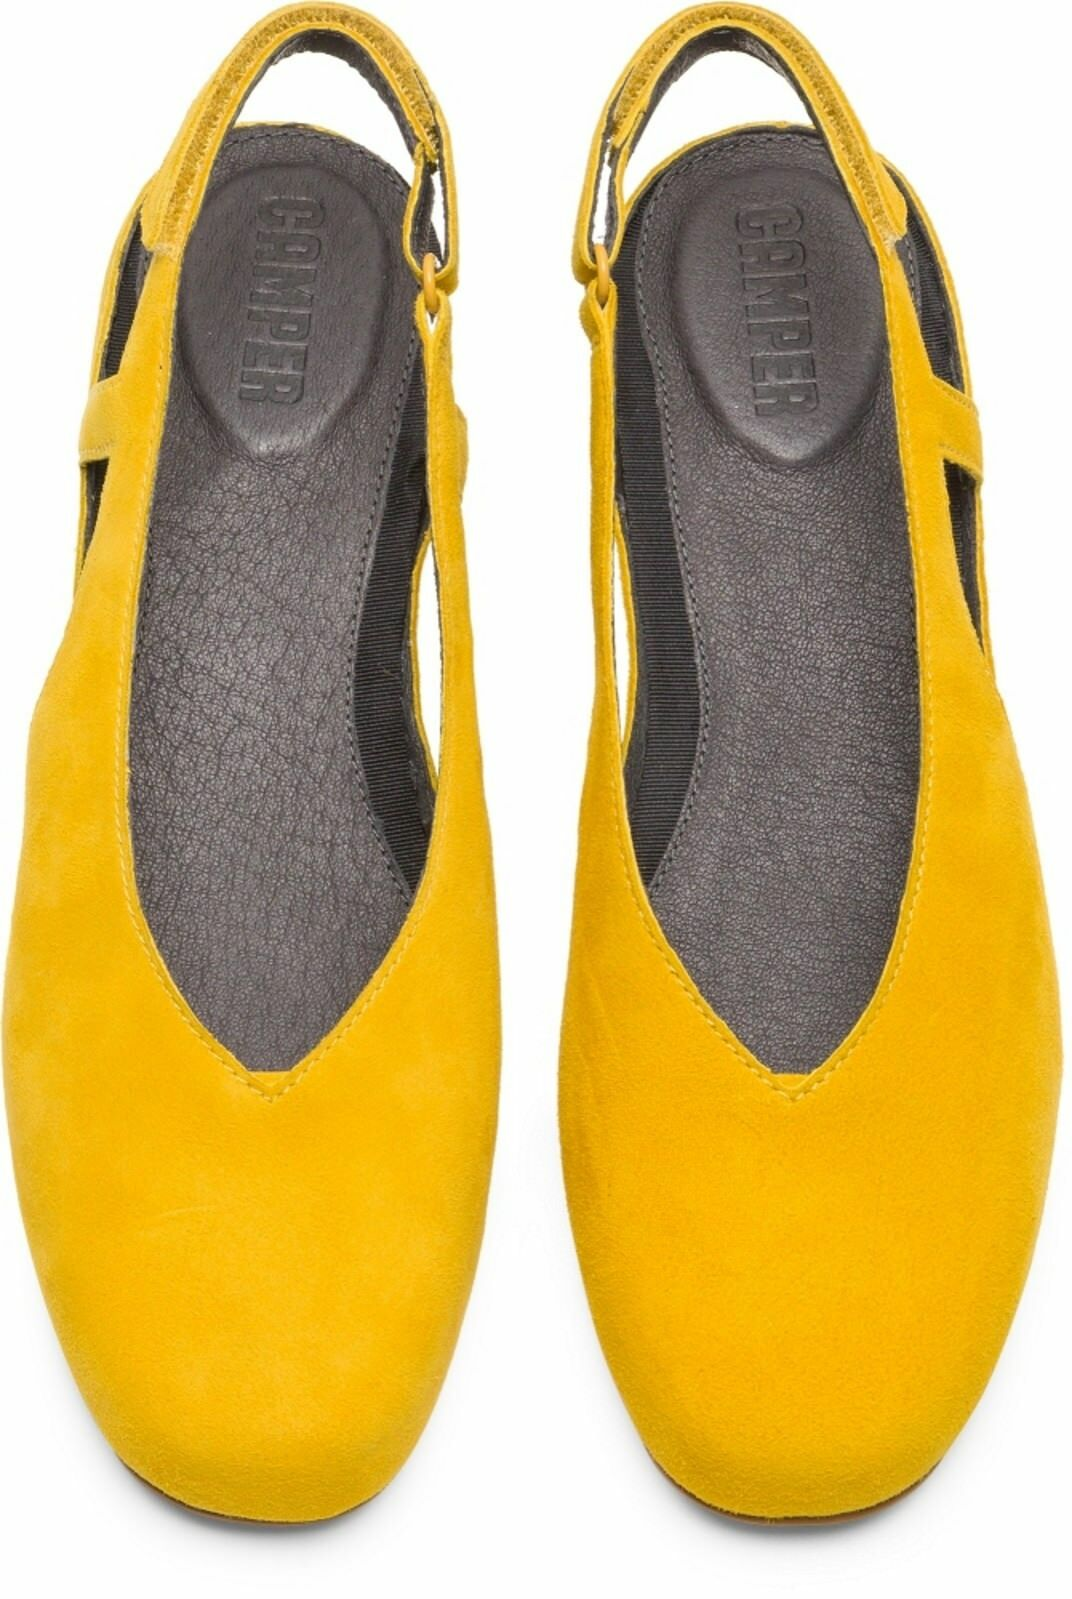 Camper Serena Nubuck - K200617-002 EU - U.K. 3 - EU K200617-002 36 - Yellow - Brand New In Box 2b2ac7